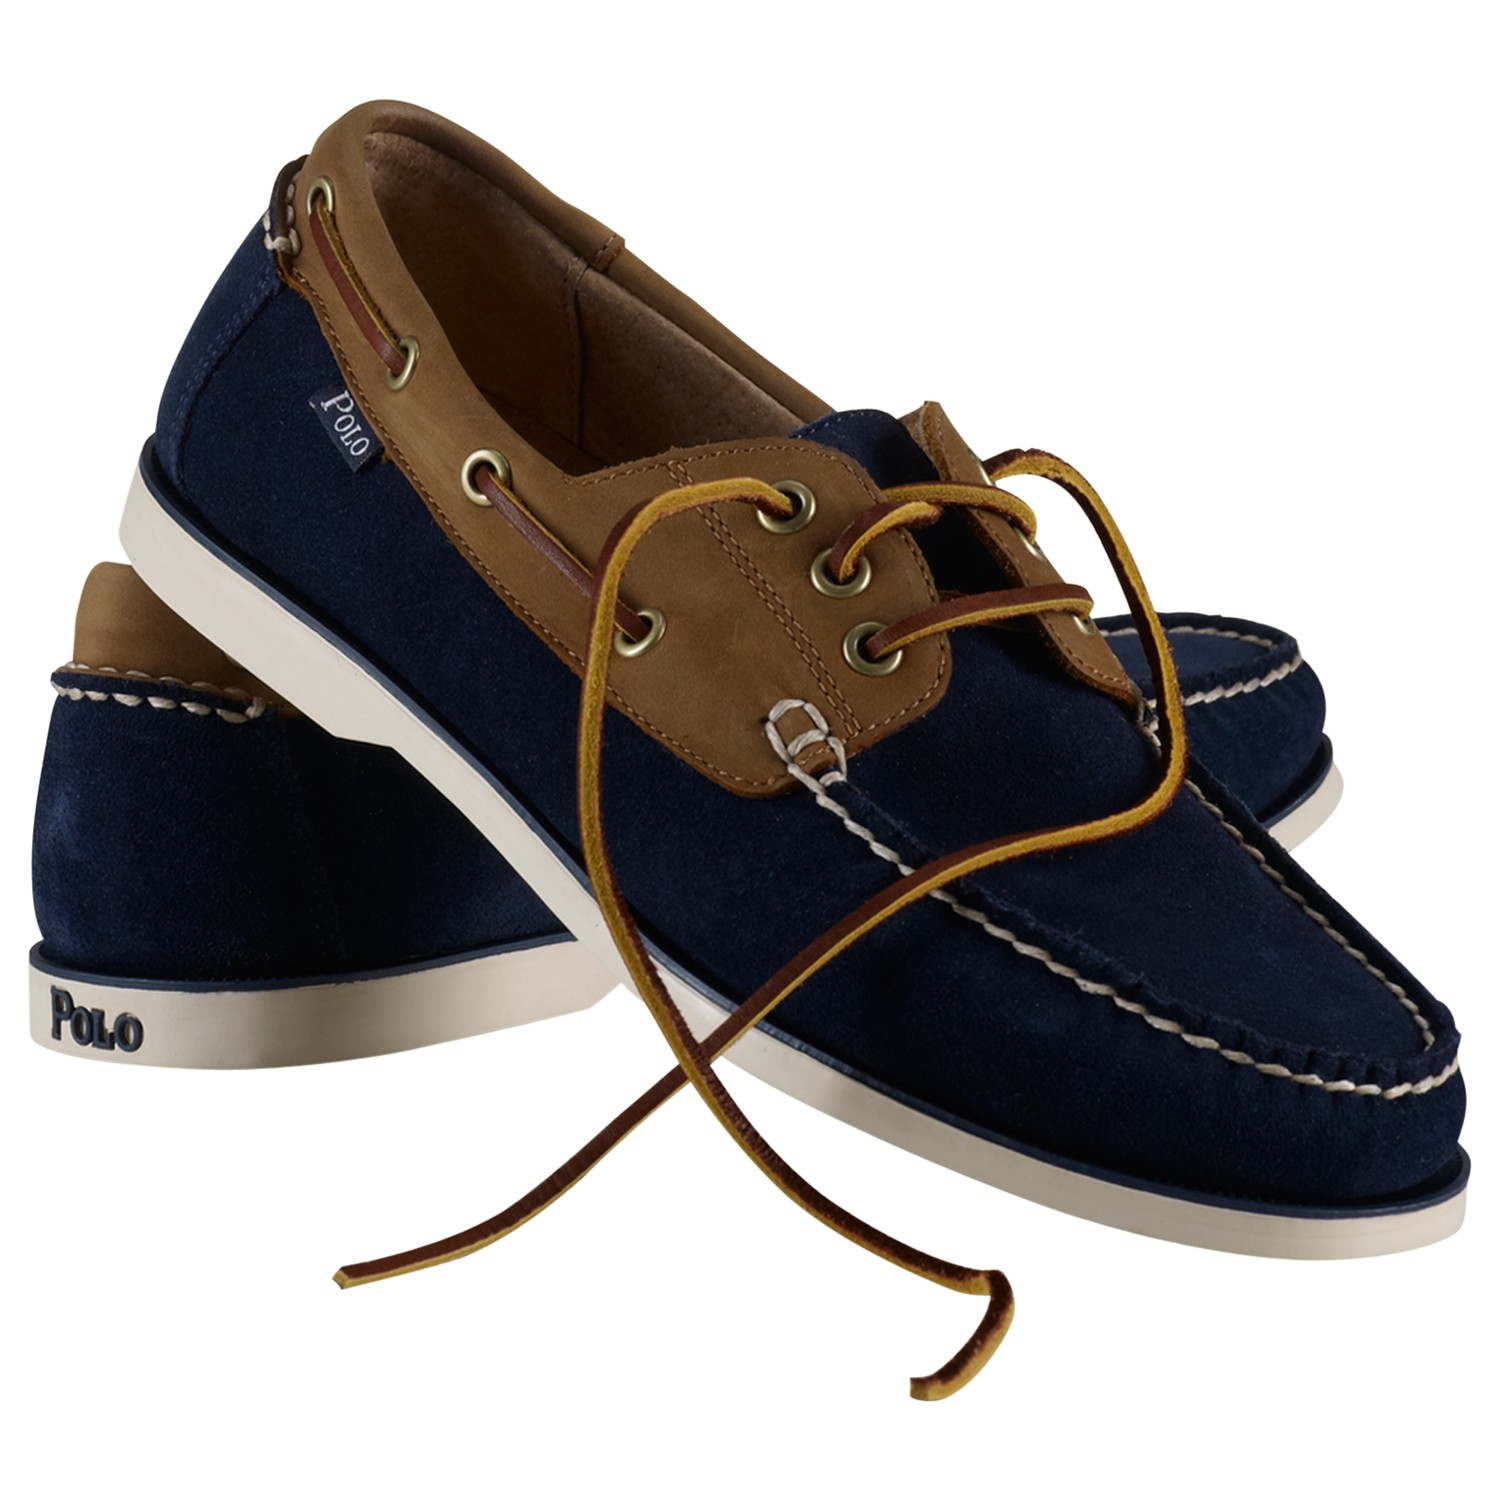 Blue Suede Shoes Polo Ralph